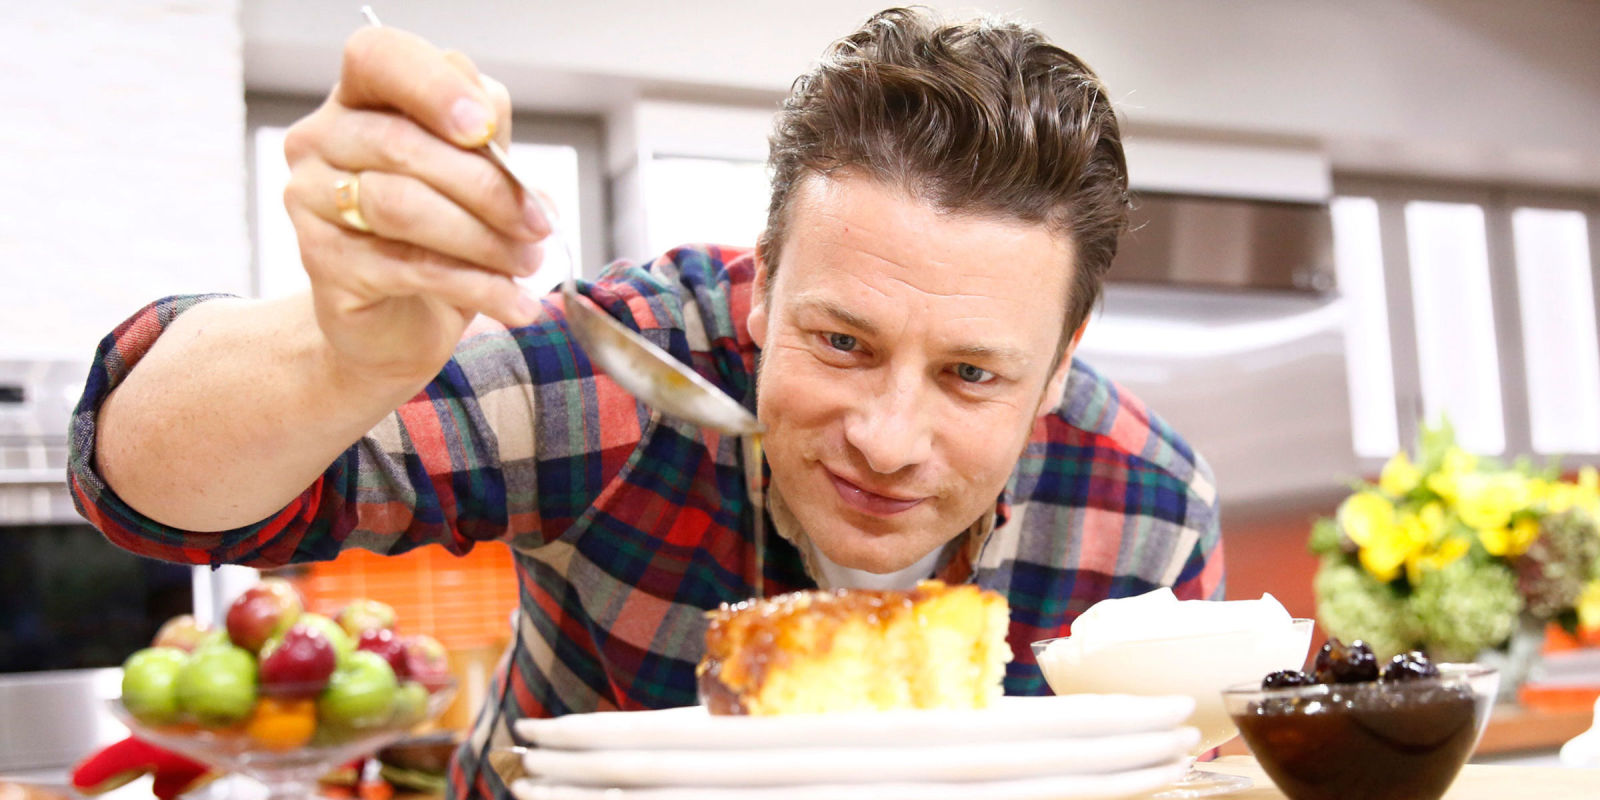 Jamie Oliver S Ministry Of Food Courses Can Improve A